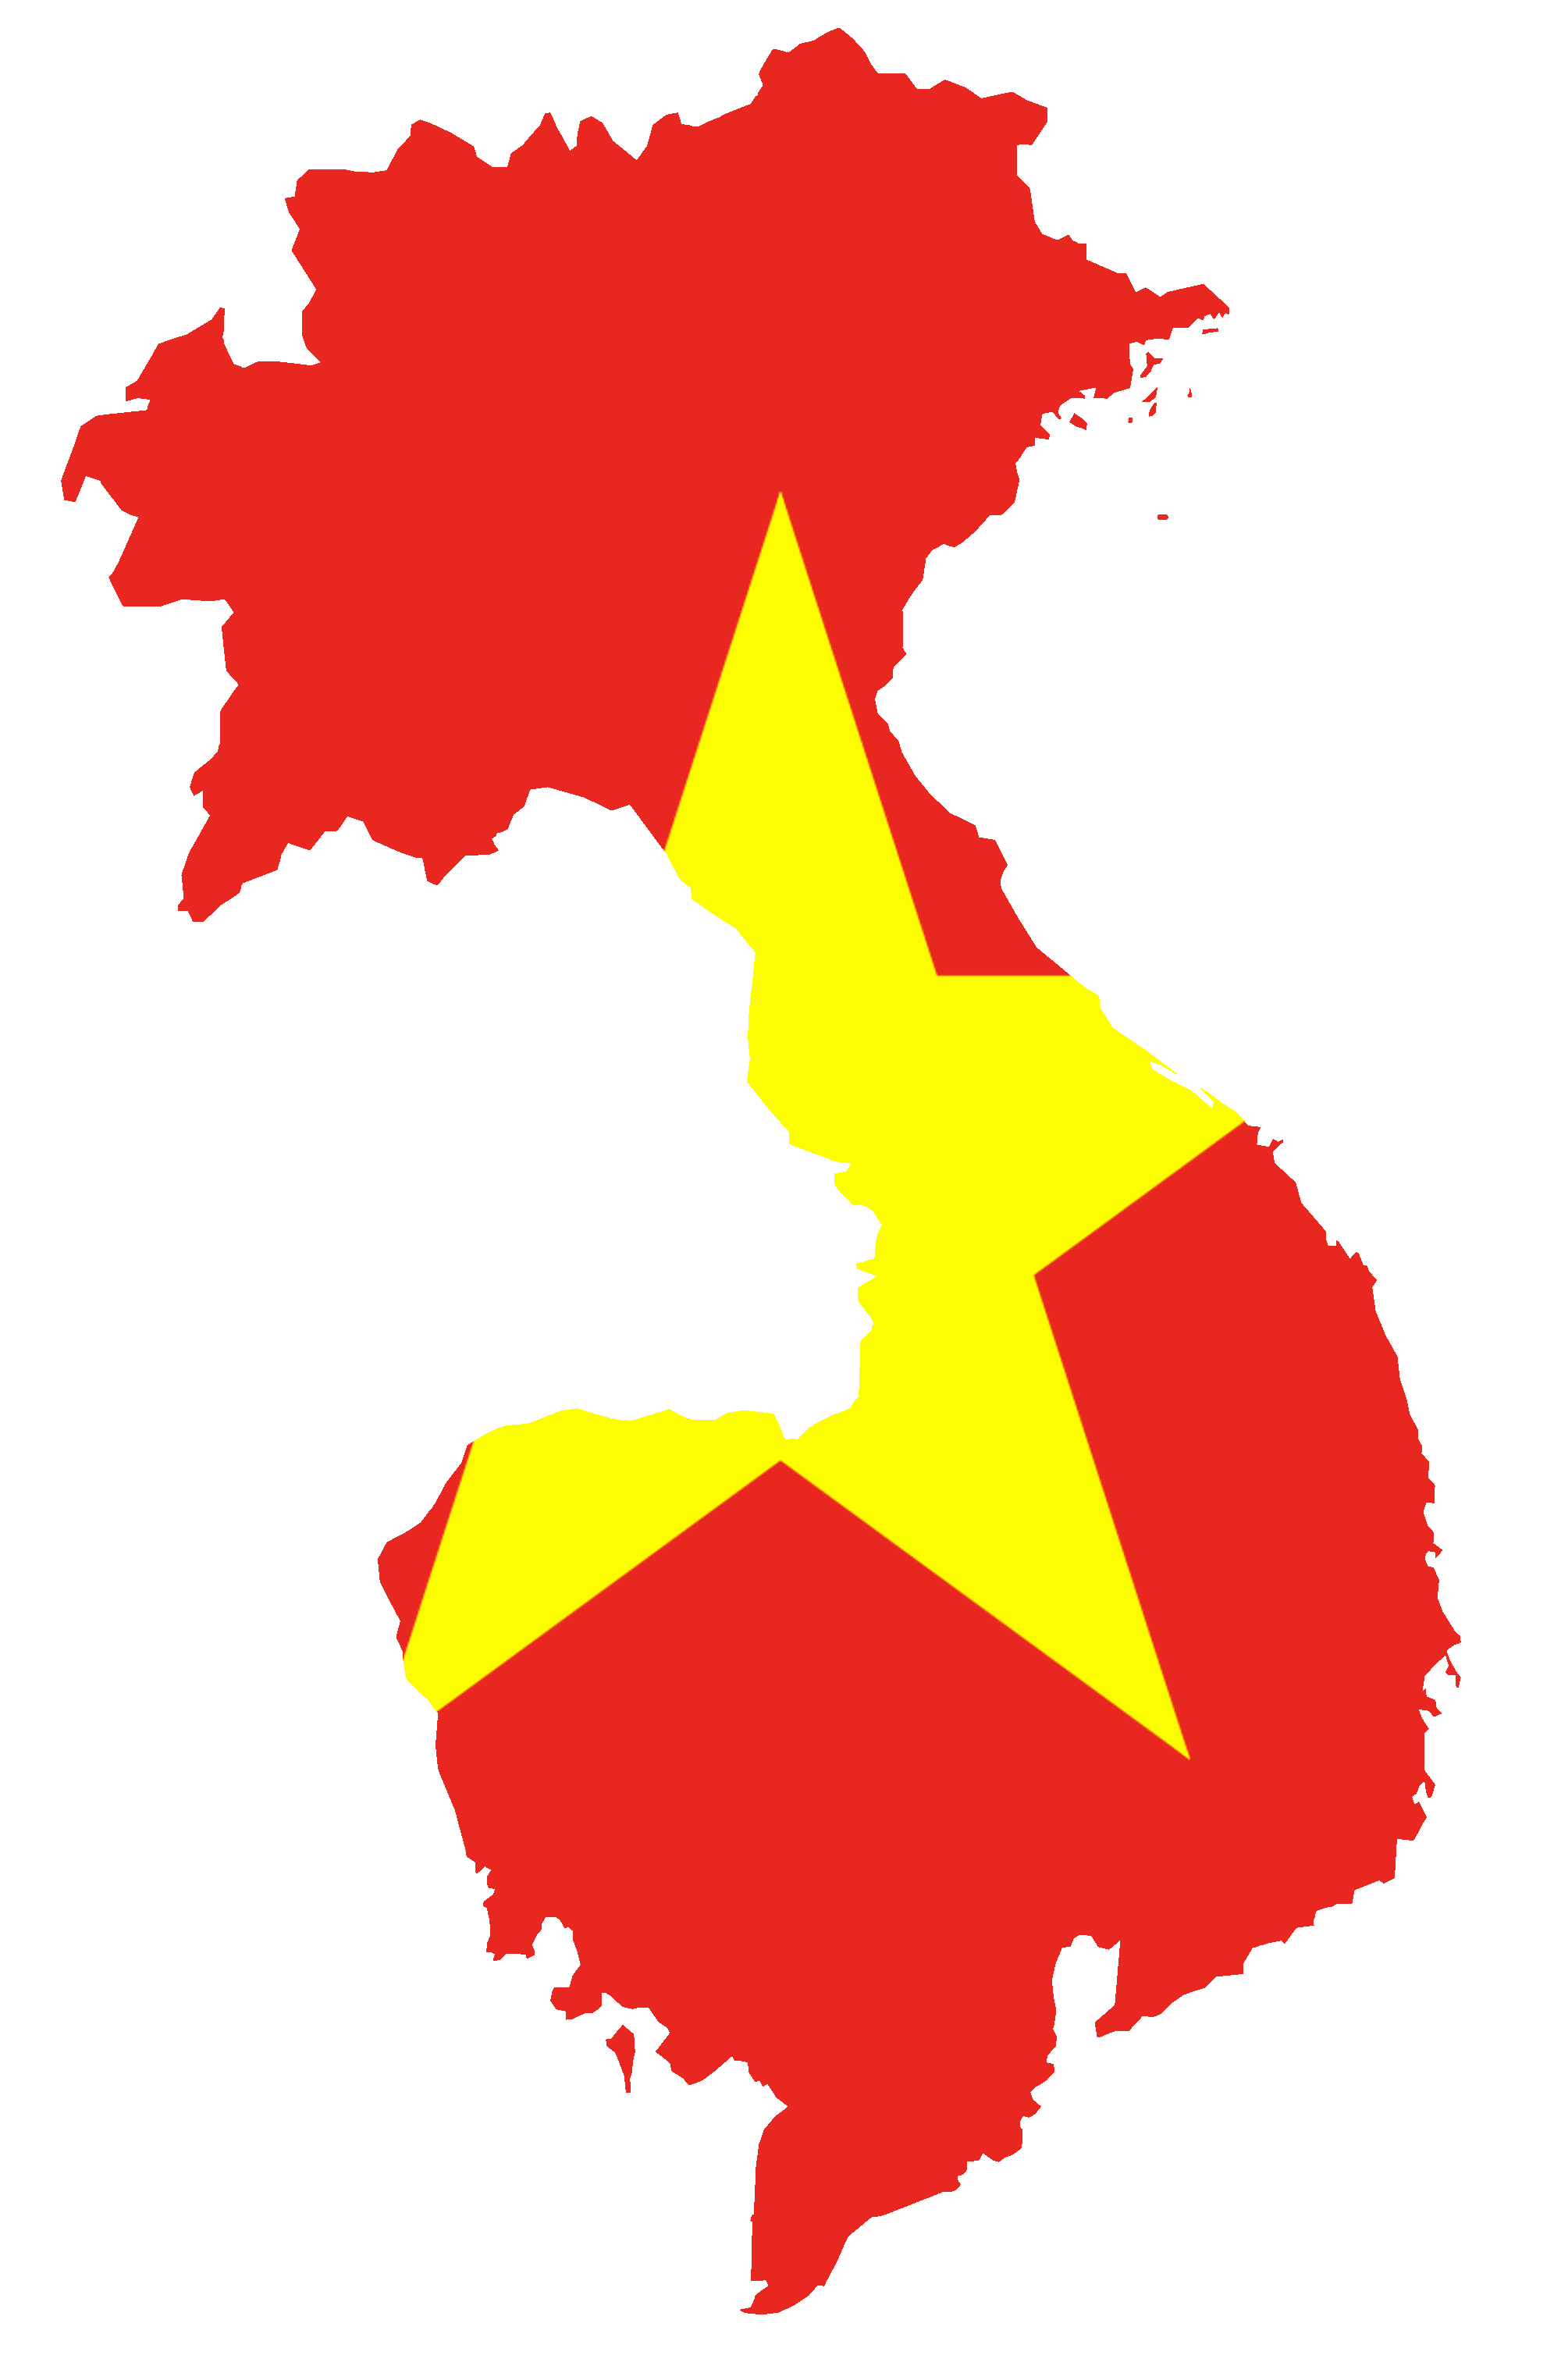 File:Flag map of Greater Vietnam.png - Vietnam PNG